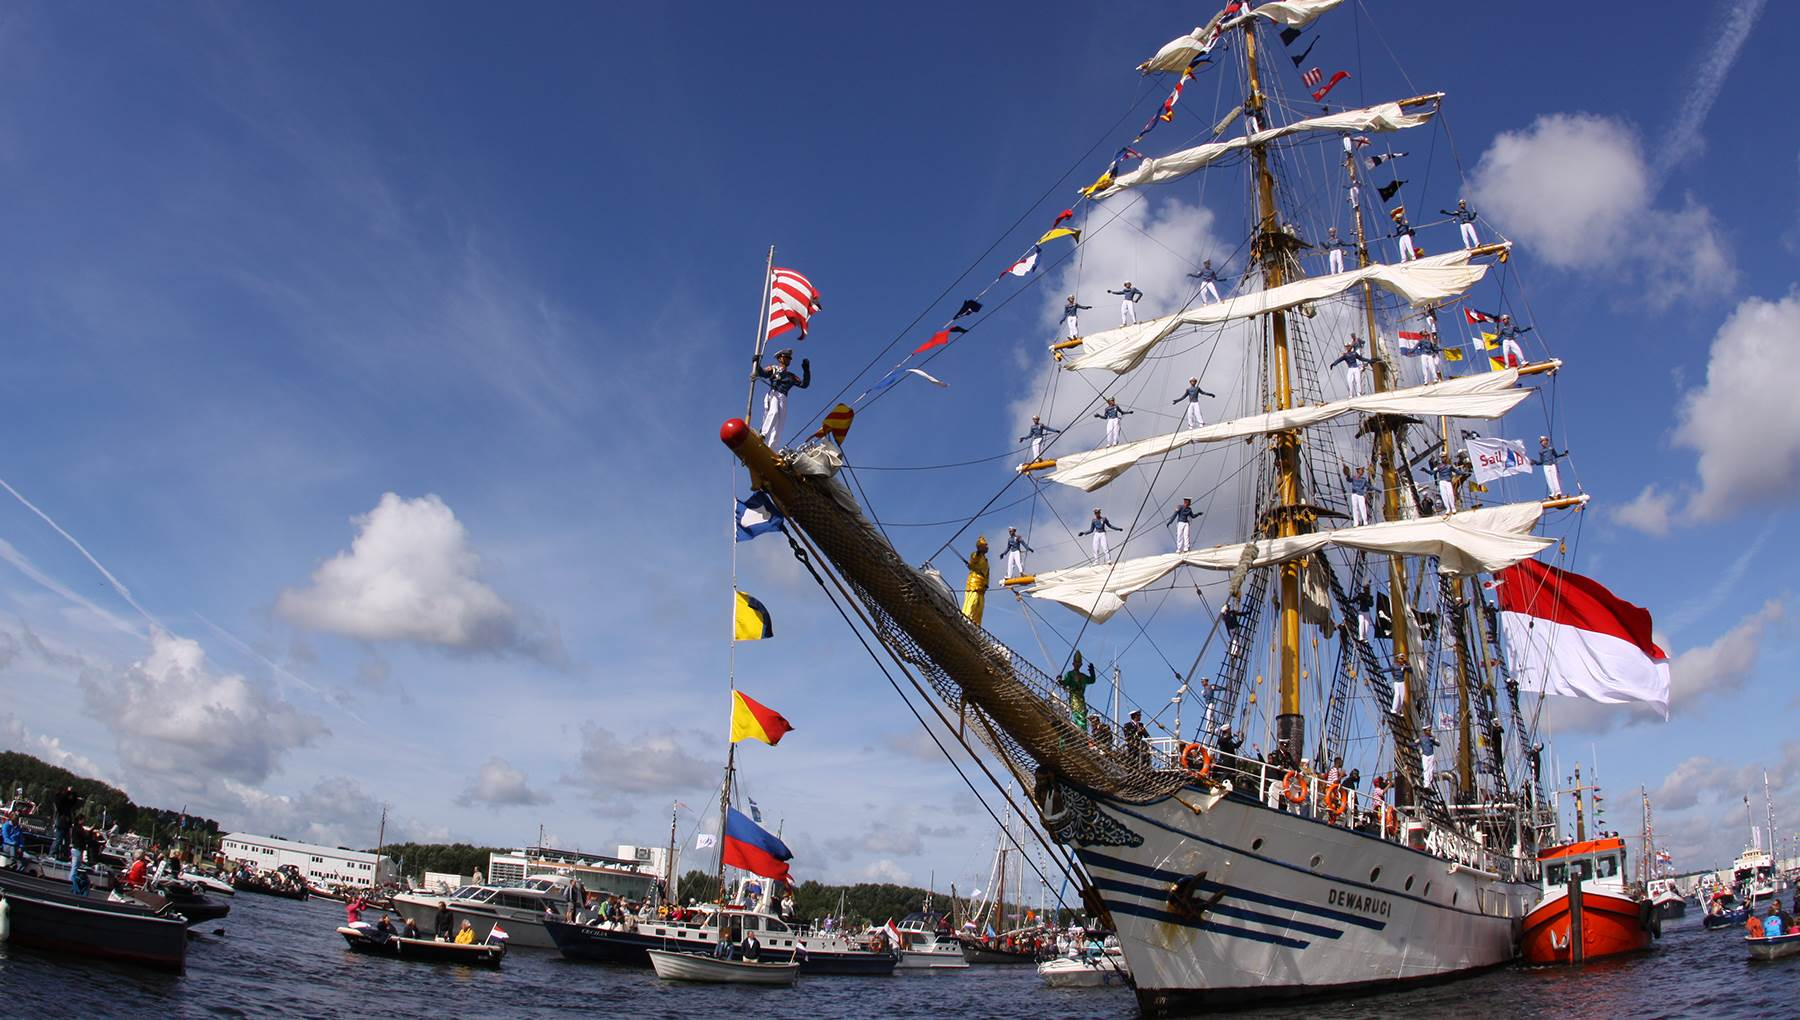 SAIL Amsterdam: maritime fun for the whole family!